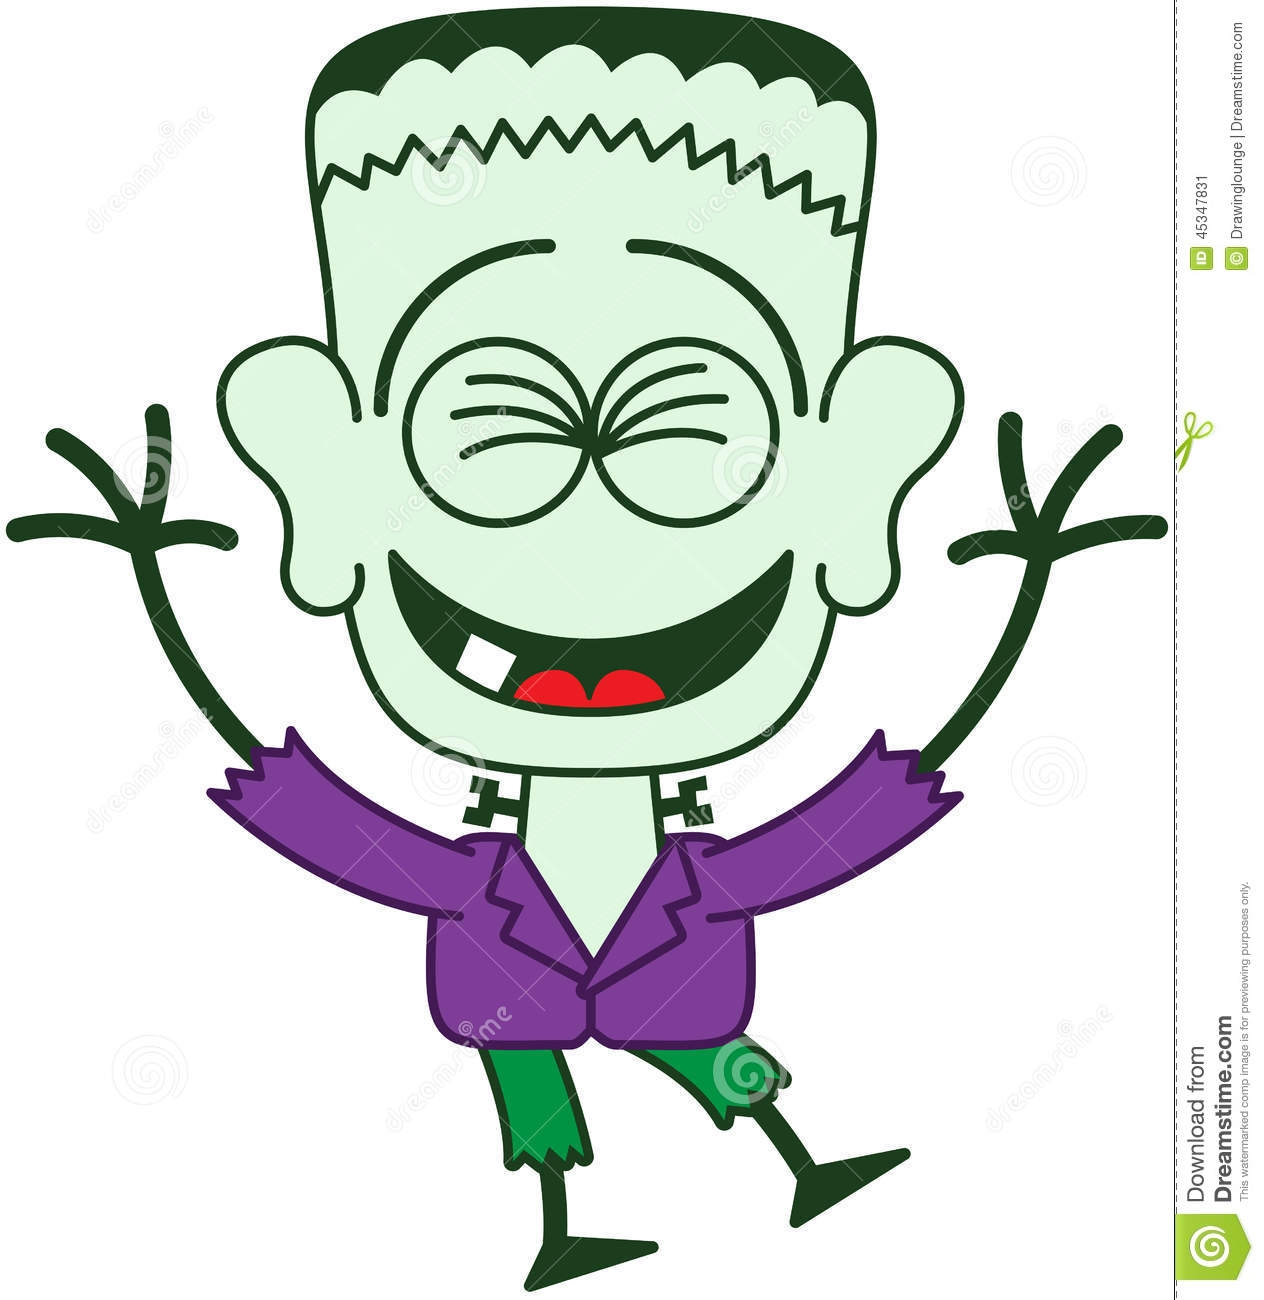 frankenstein coloring pages - stock illustration halloween frankenstein laughing enthusiastically cute monster minimalist style stitched wound his head bolts image